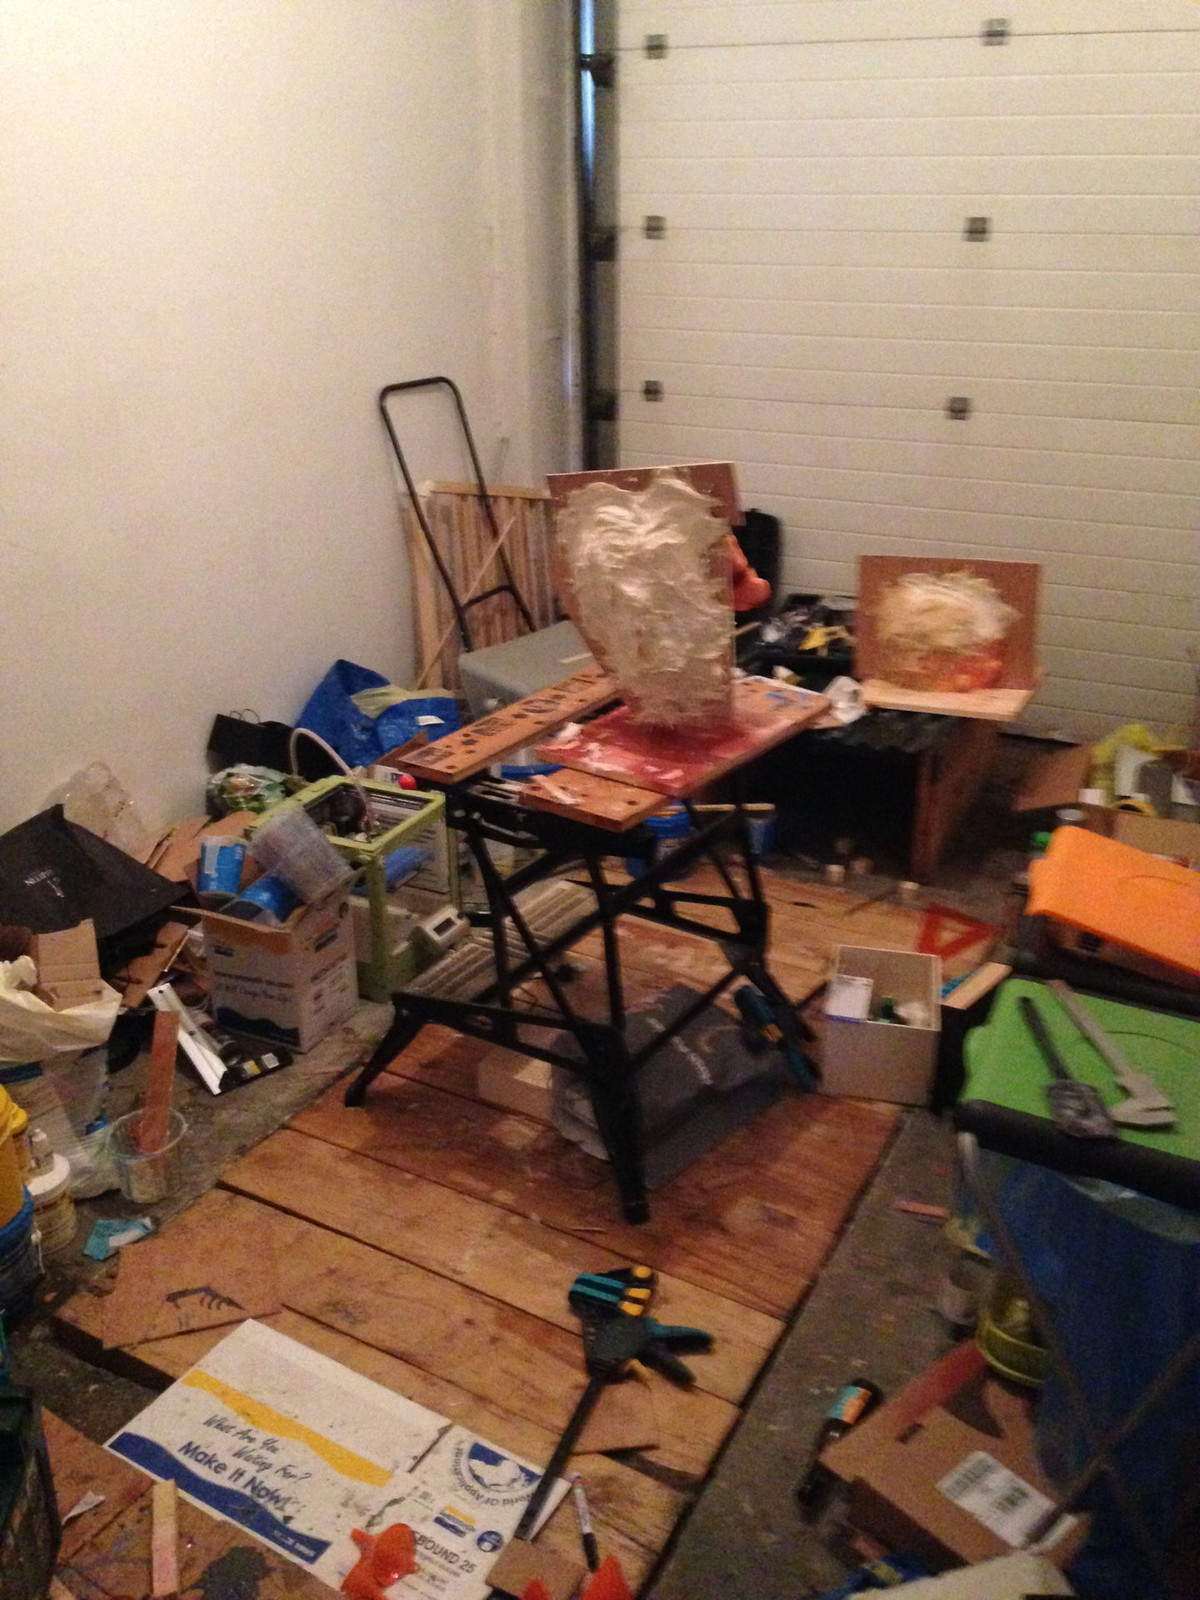 My garage was a mess for a couple of months